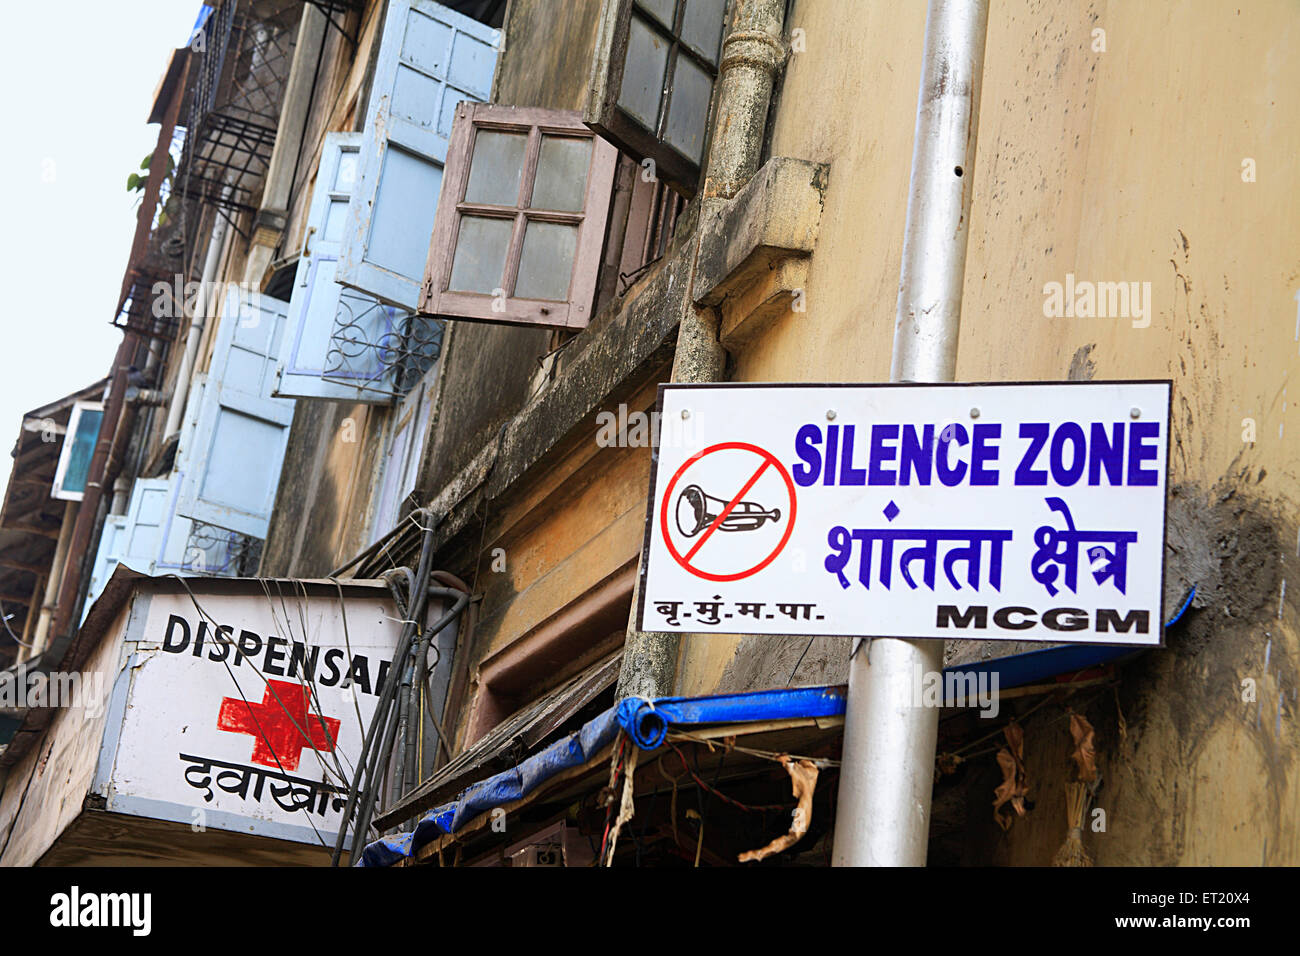 Dispensaire et zone de silence ; palissade ; Bombay Mumbai Maharashtra Inde ; Photo Stock